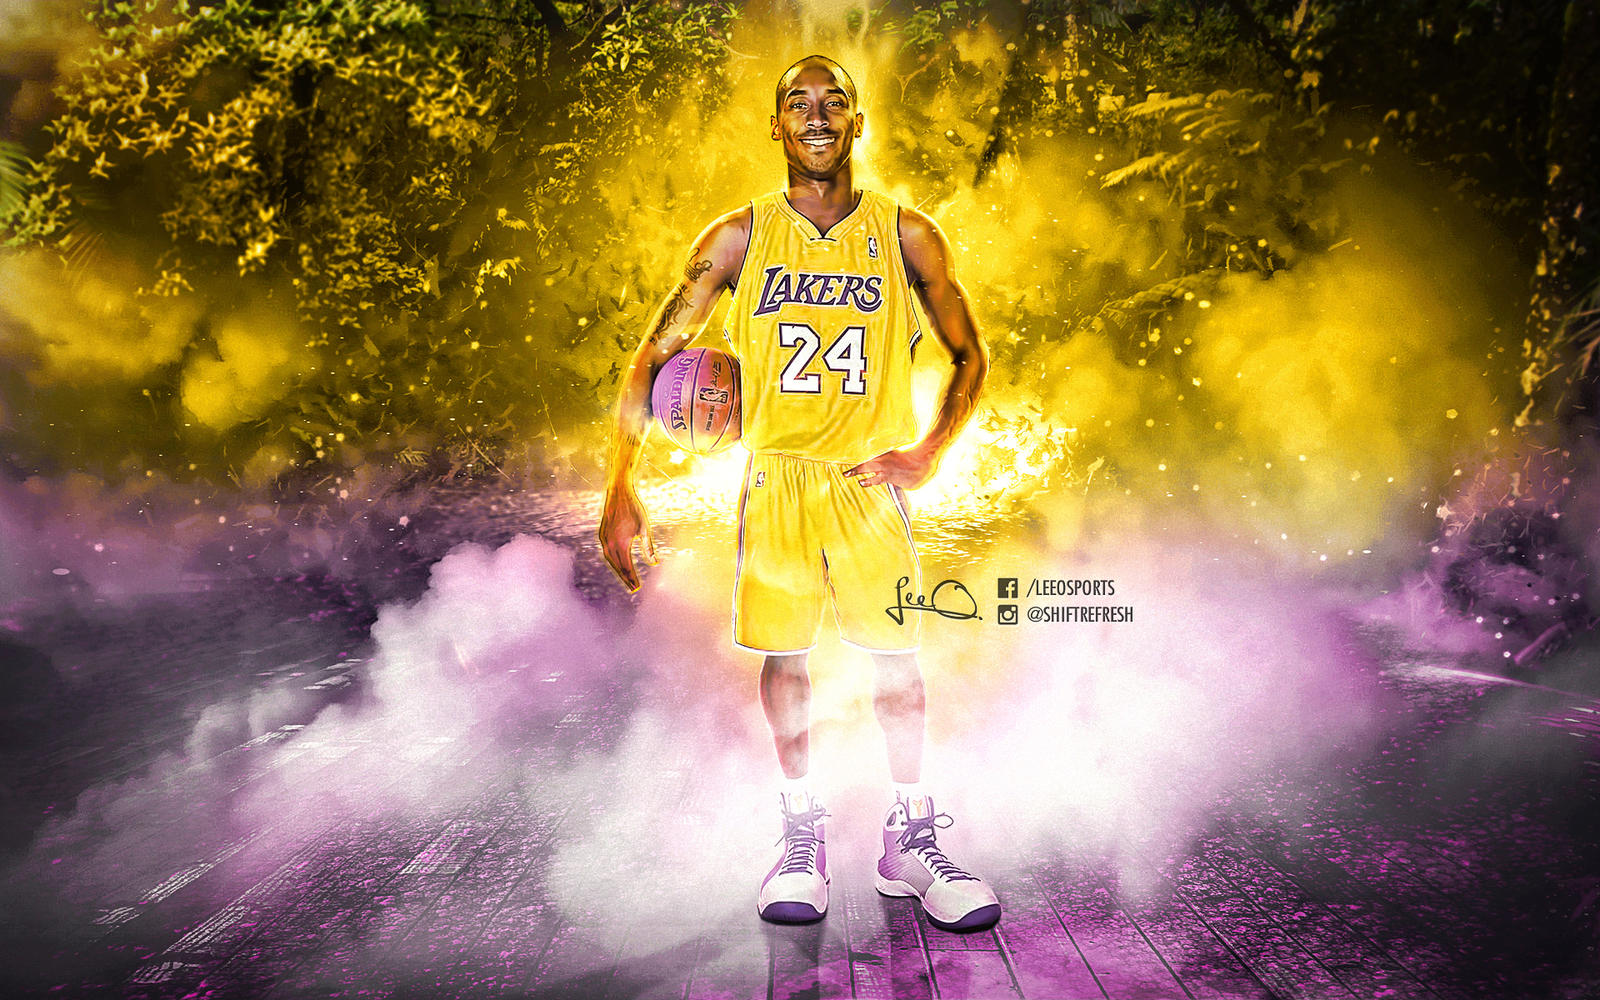 kobe bryant wallpaper 2016 - photo #11